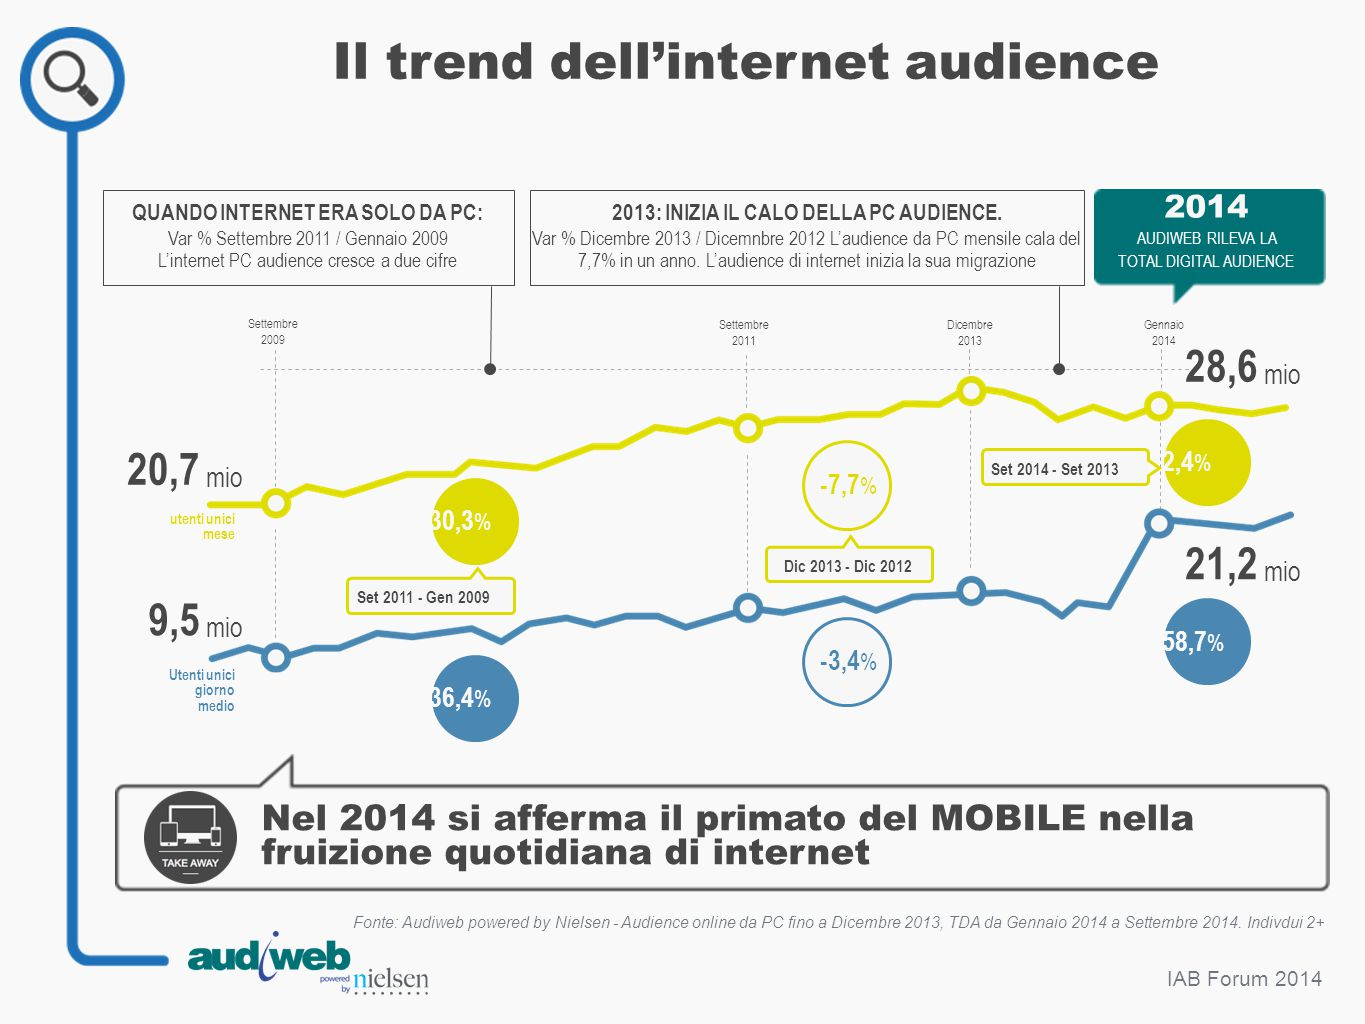 Il trend dell'internet audience